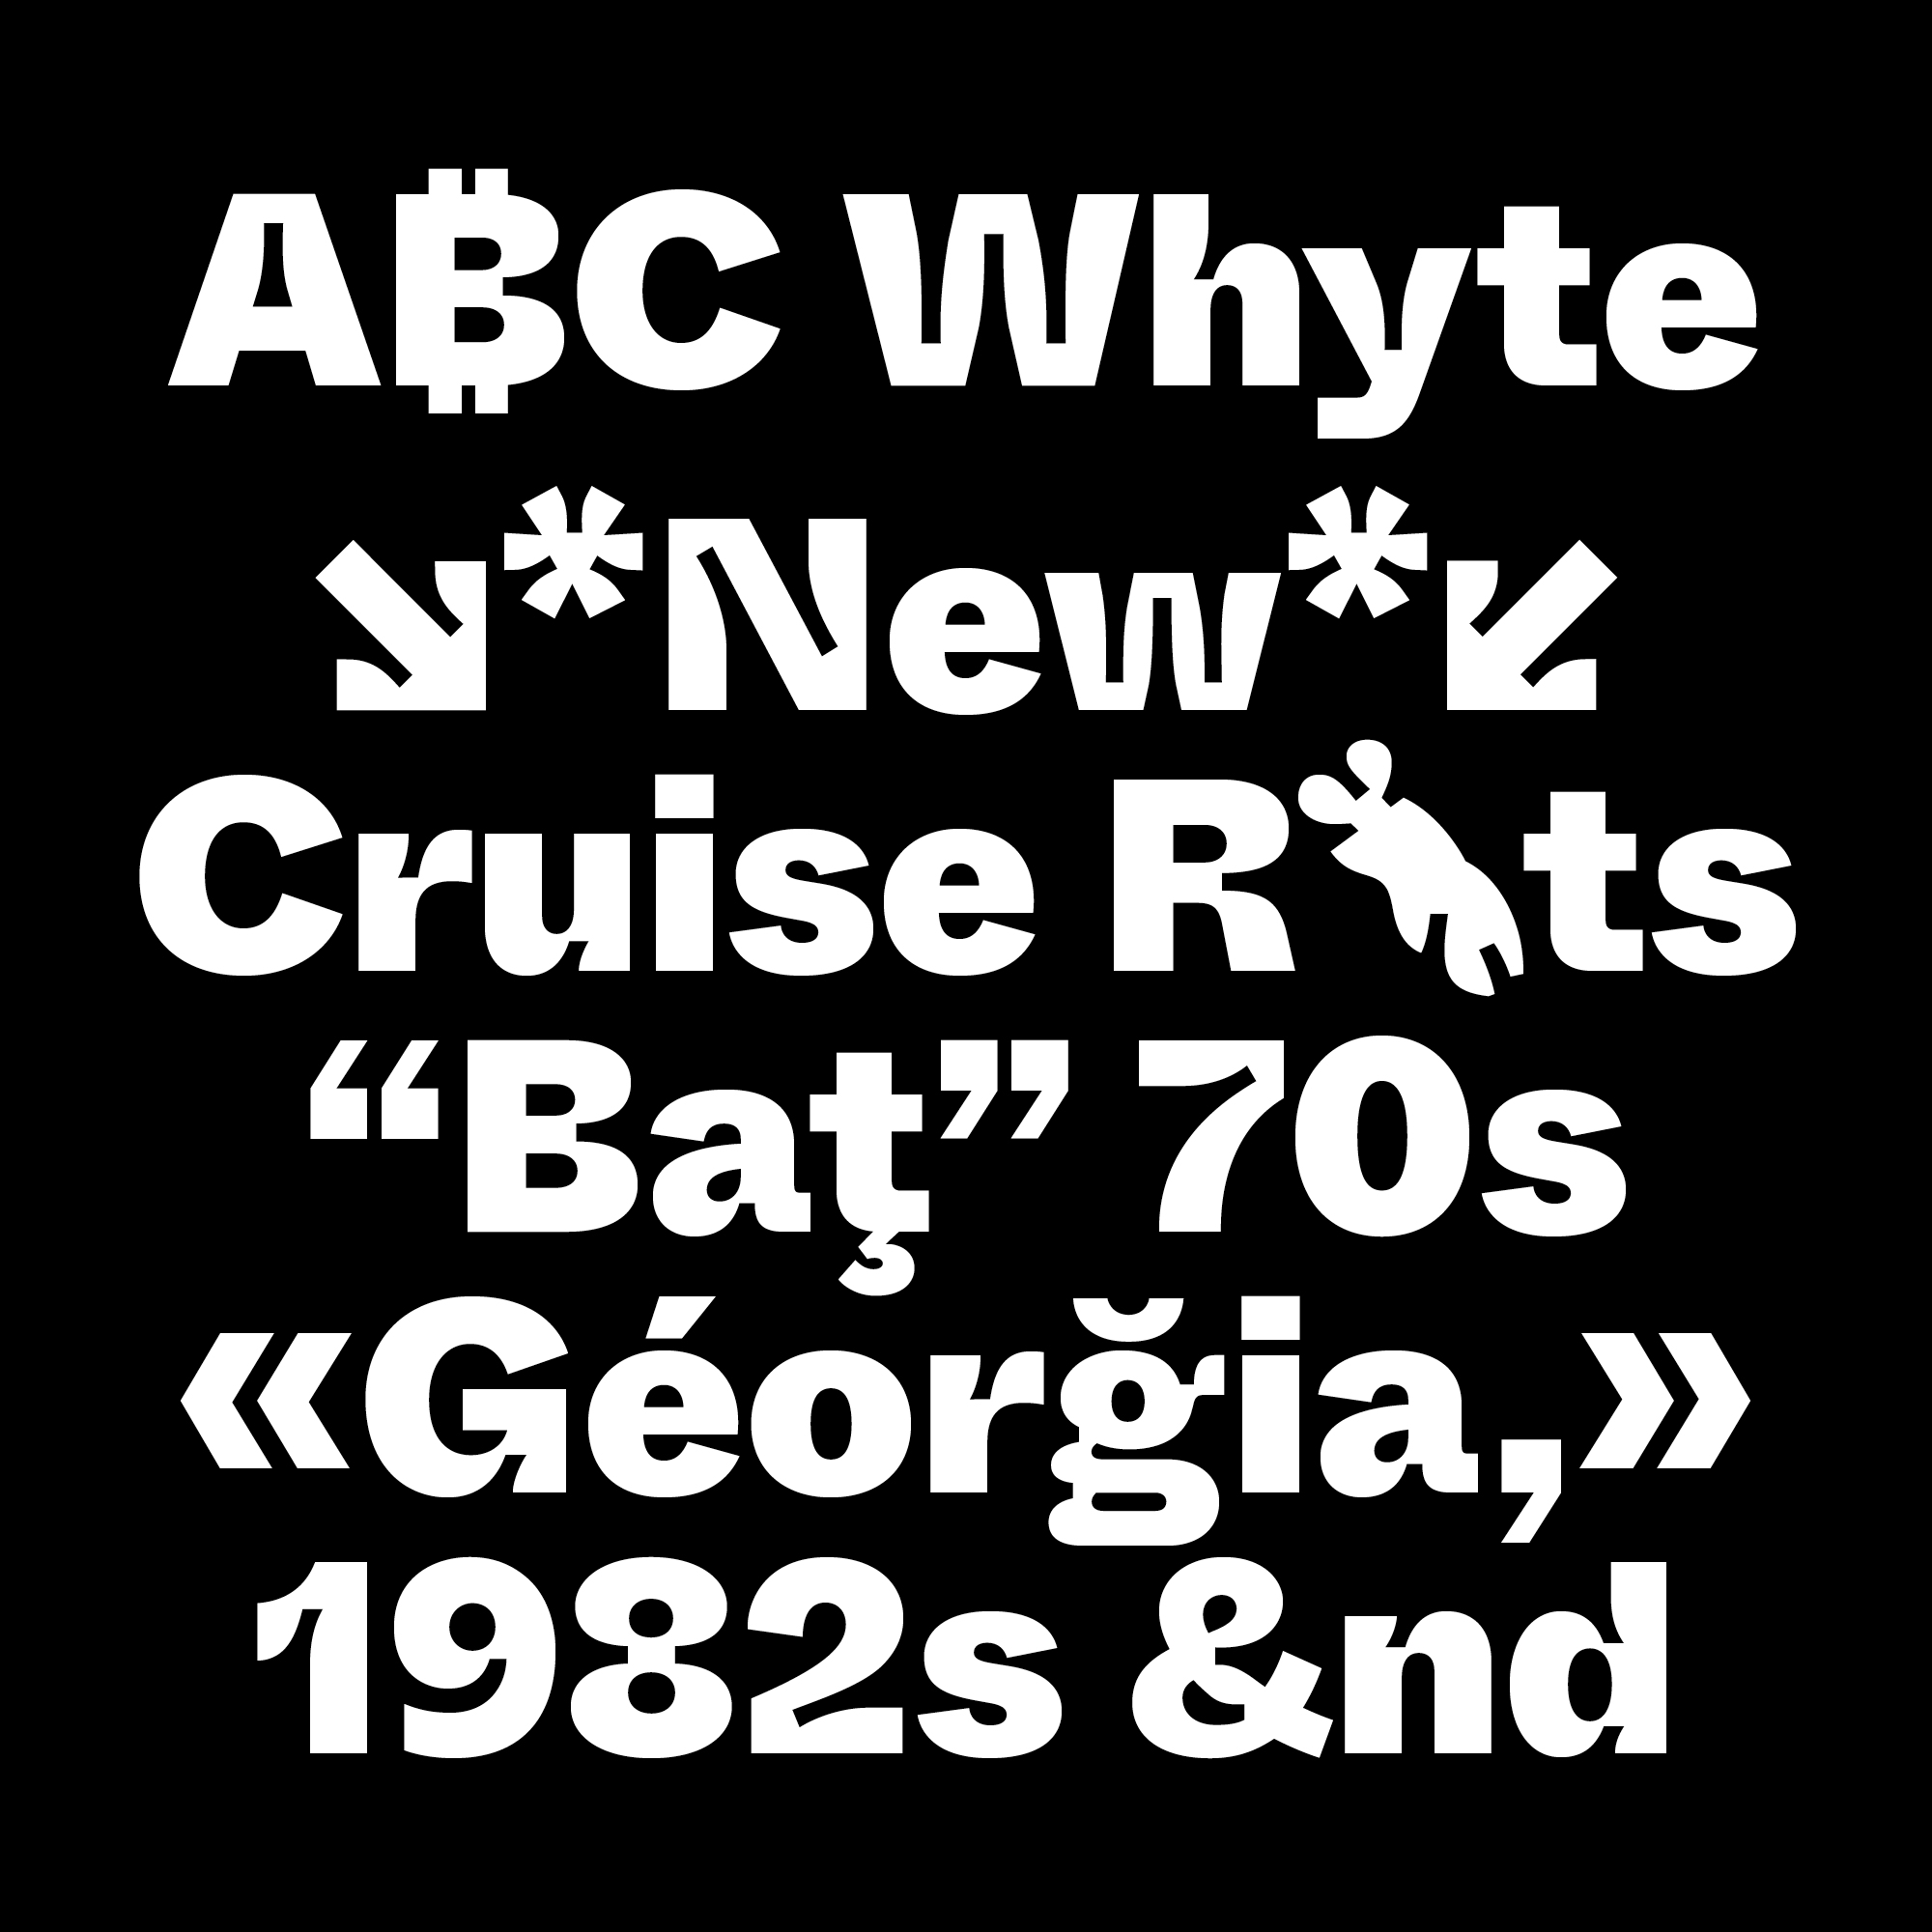 Whyte fonts